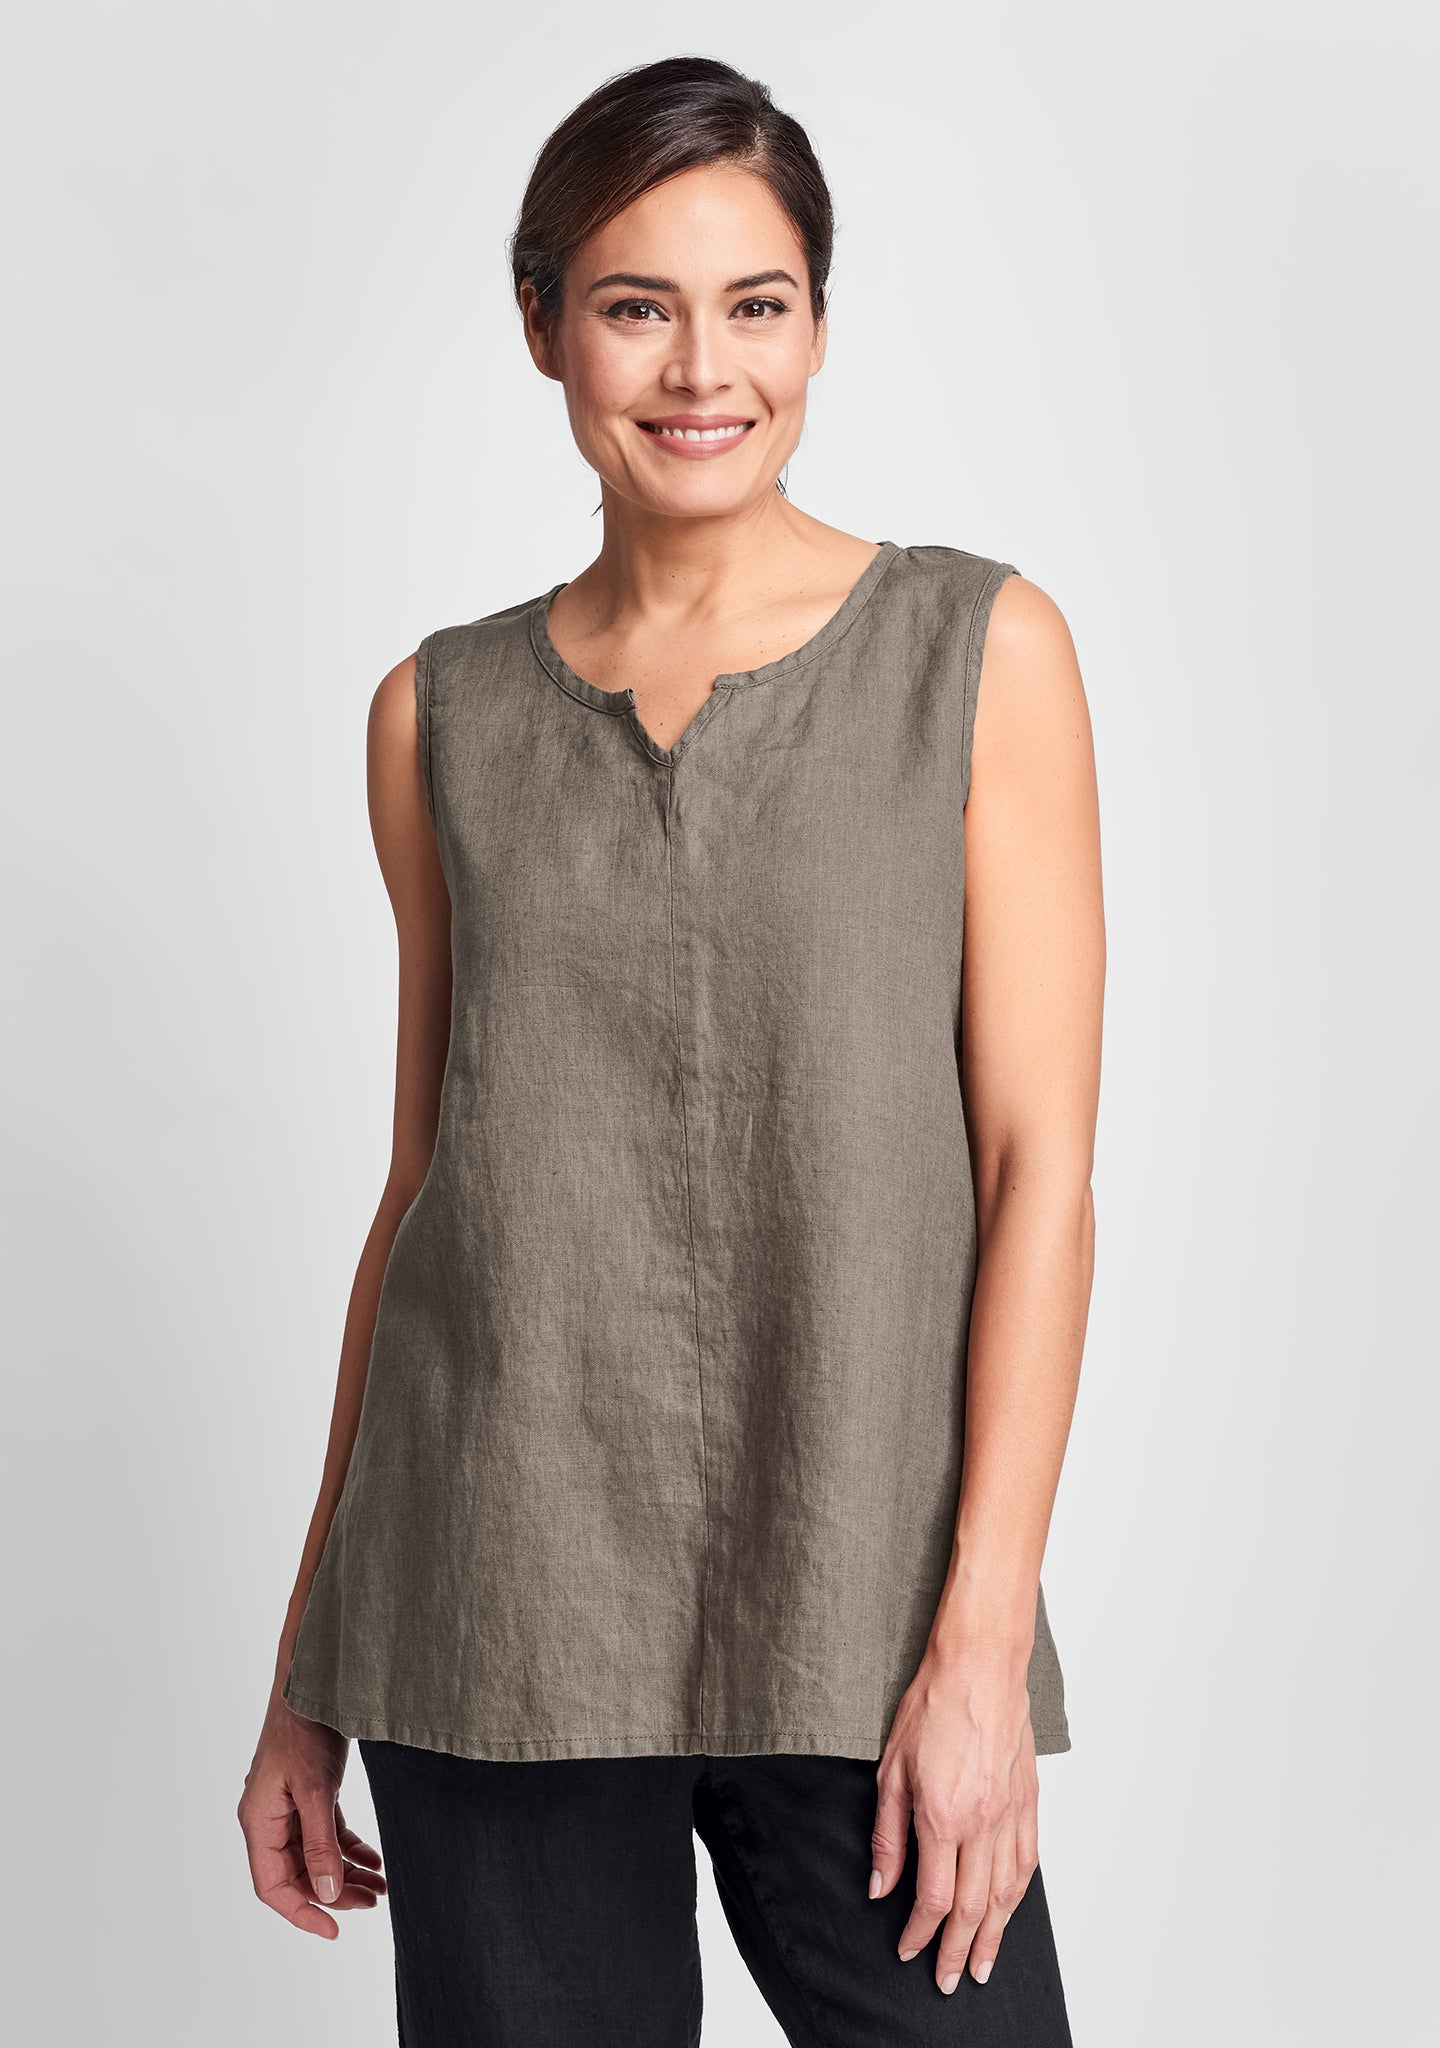 true tunic linen tank top brown